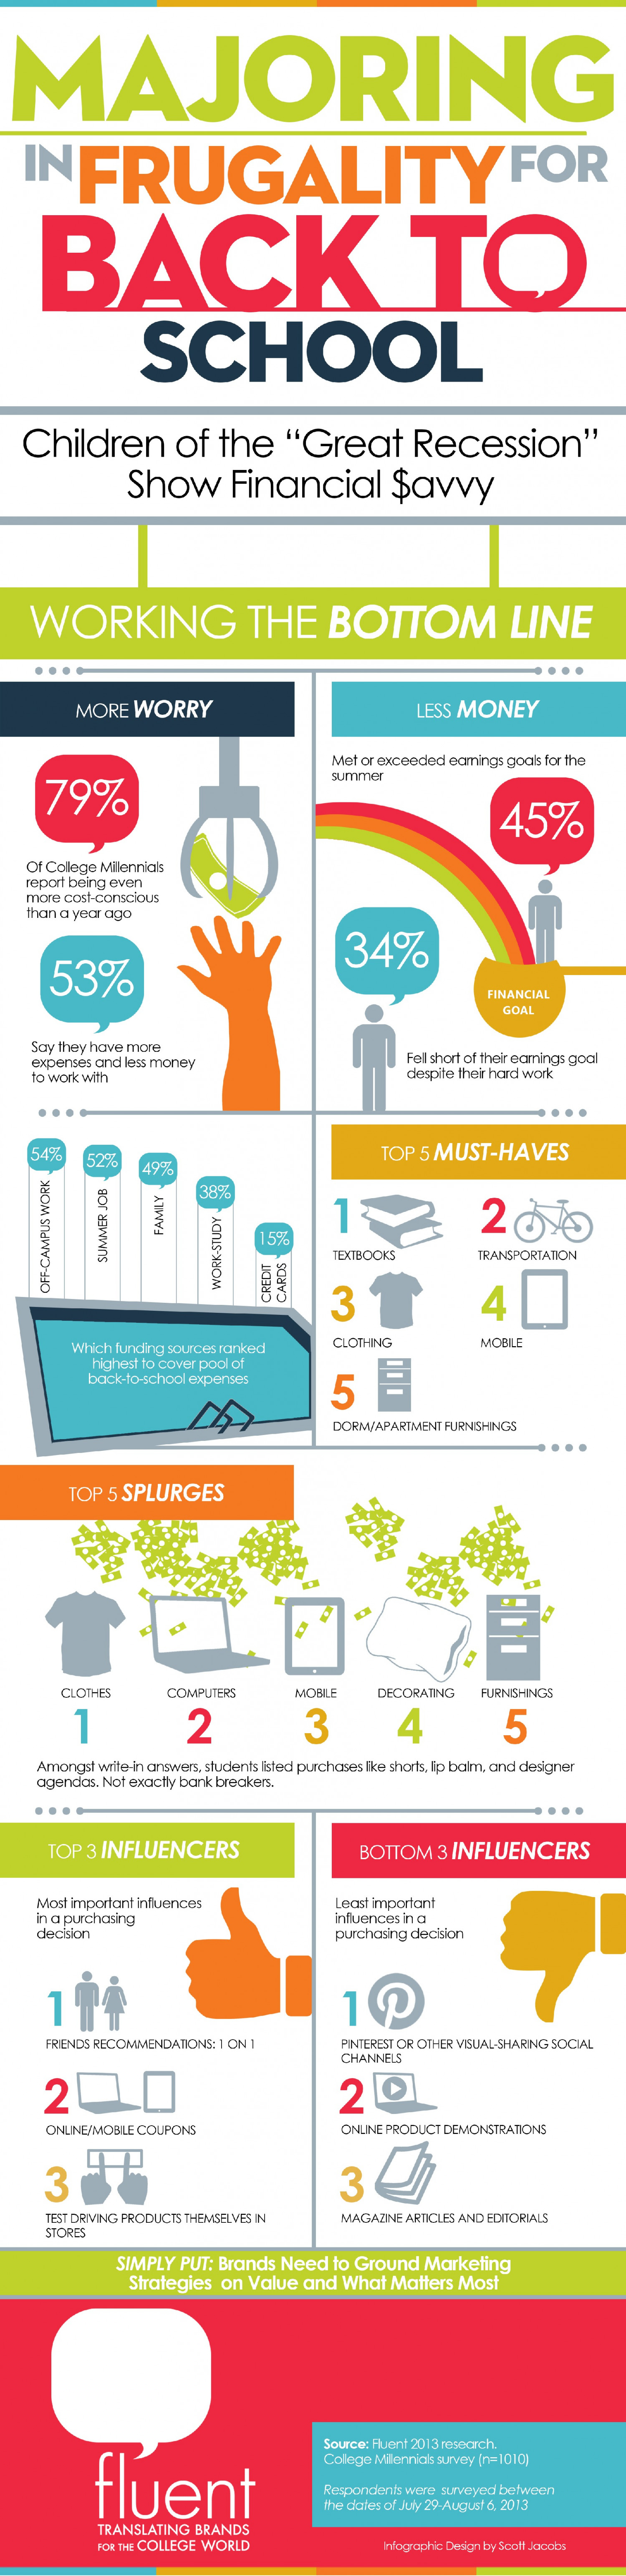 College Millennial Consumers & Back-to-School Infographic